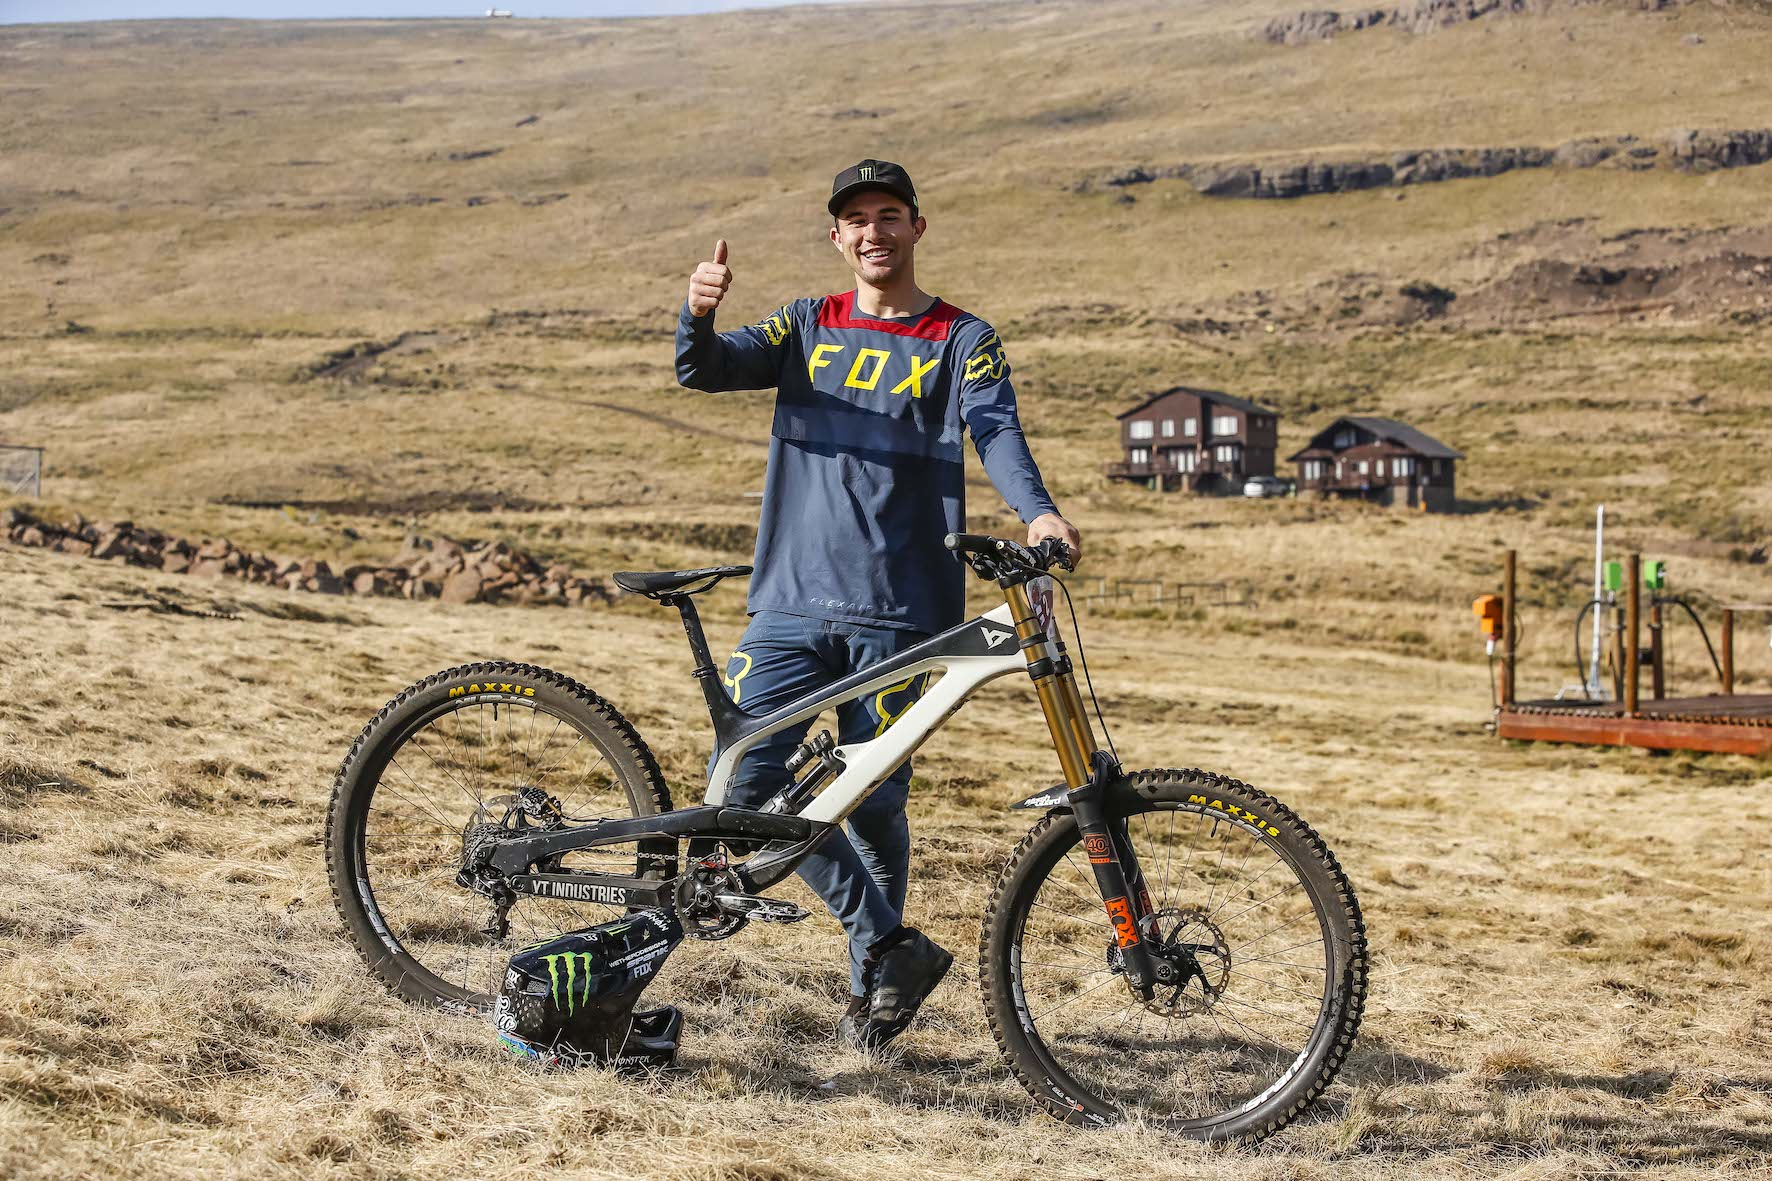 Interview with the 2019 South African Downhill MTB Champion, Theo Erlangsen